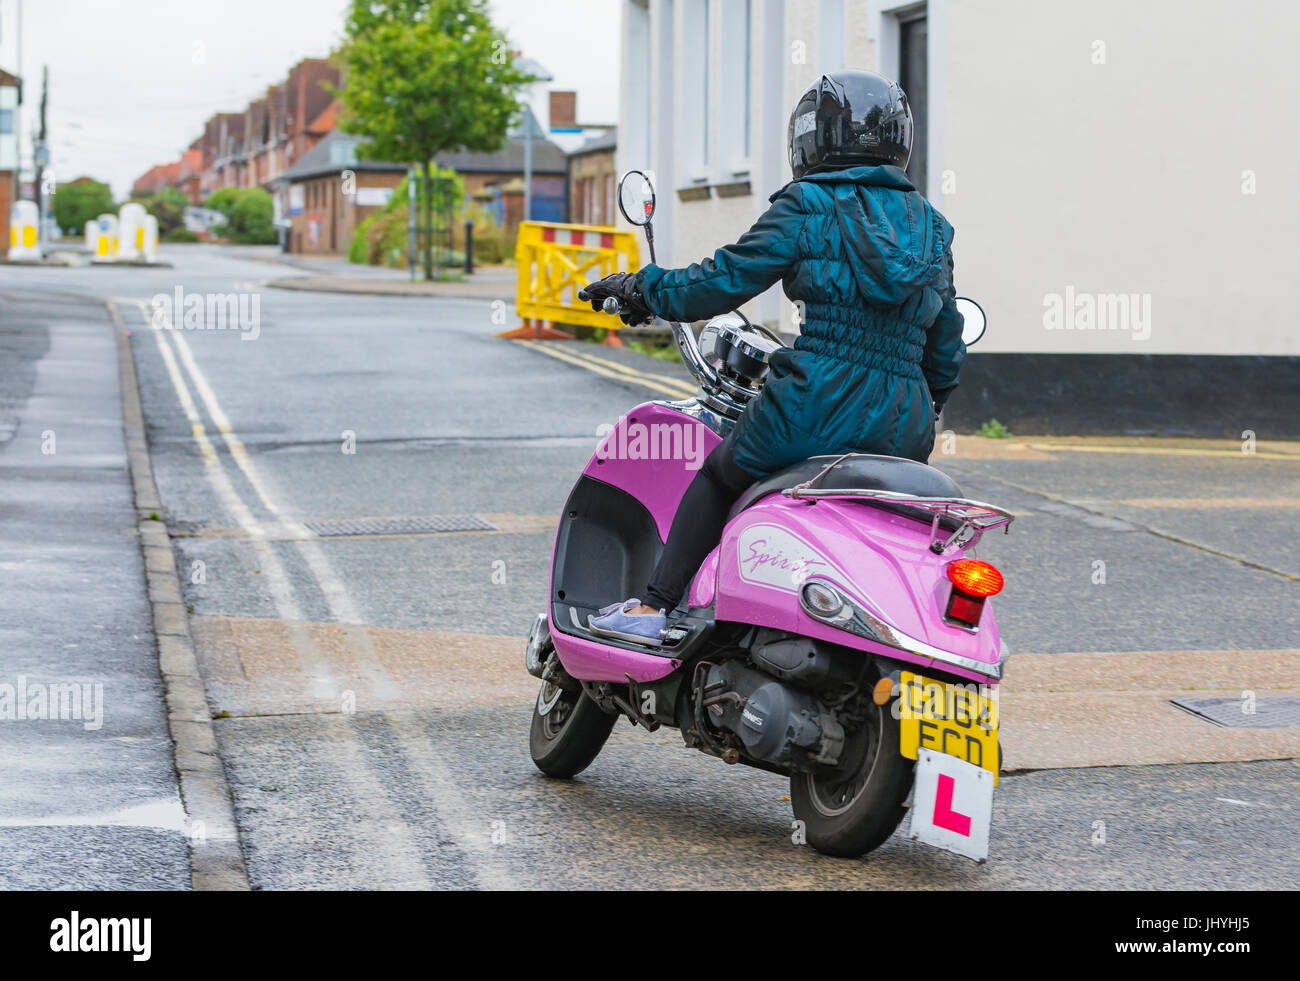 Woman riding a Pink Sinnis Spirit learner retro scooter. - Stock Image